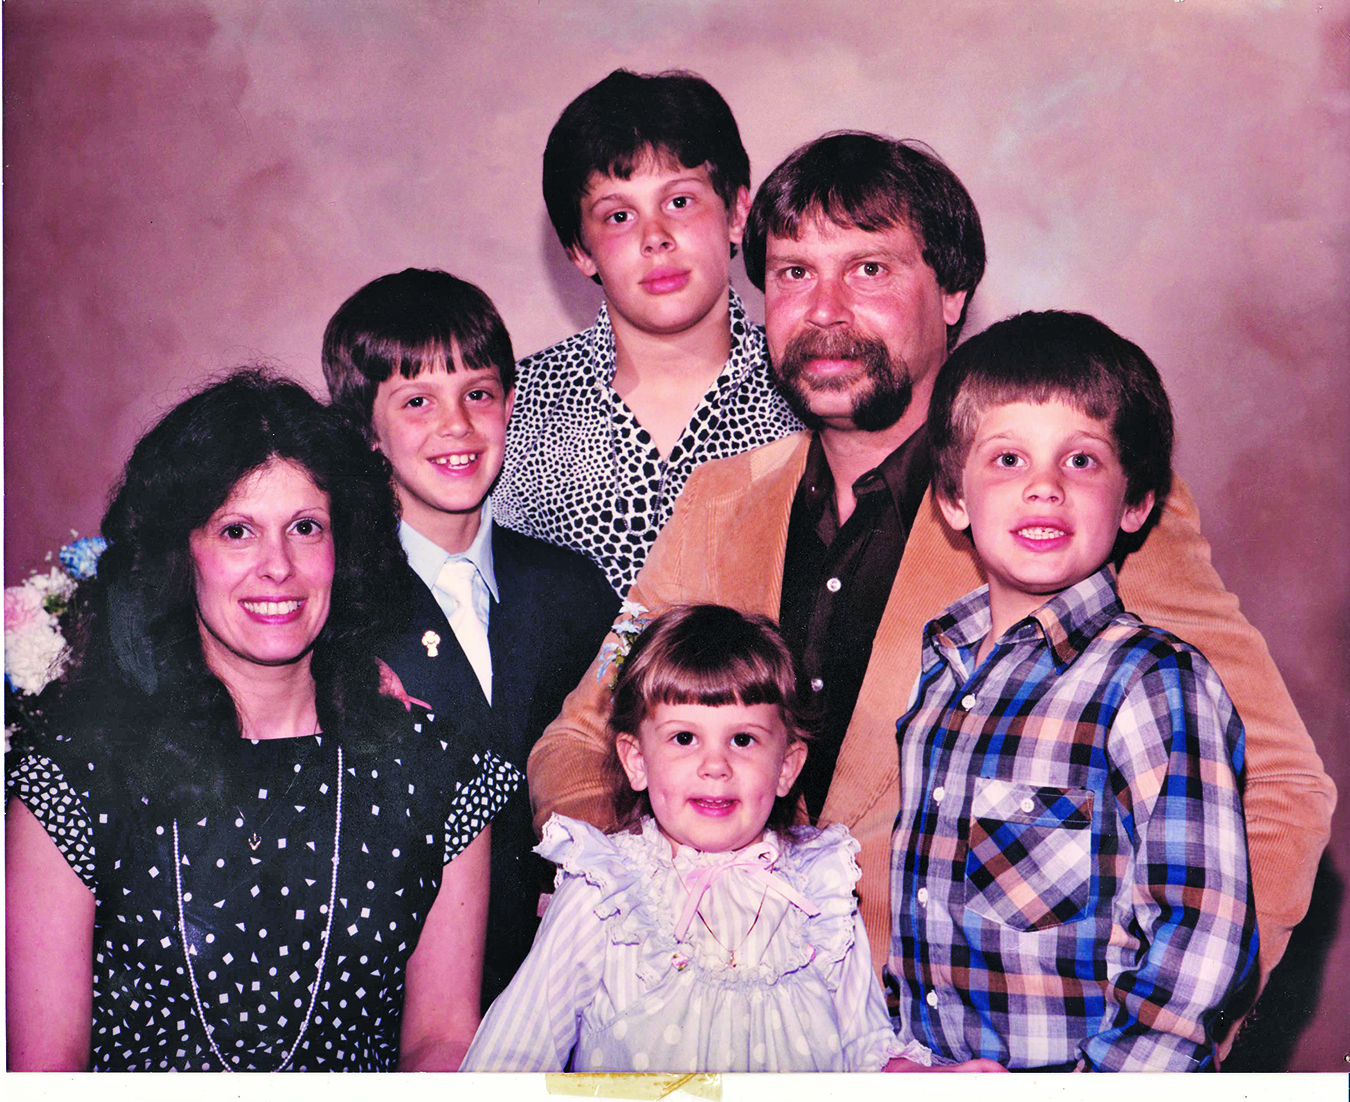 Family photo of the tv-personality, married to  Rachael Biester, famous for American Chopper.